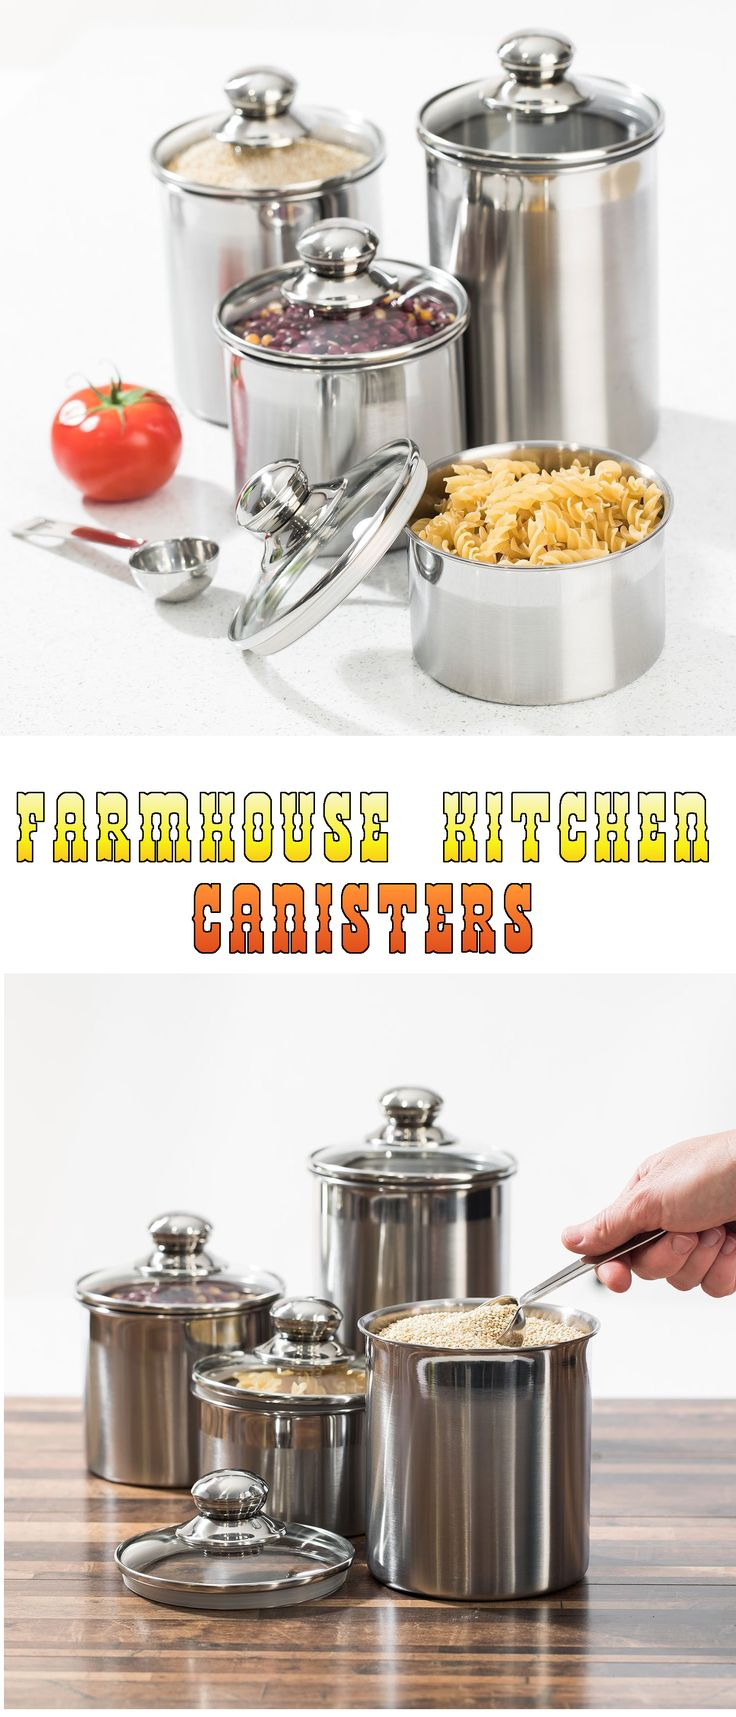 farmhouse kitchen canisters - silveronyx stainless steel